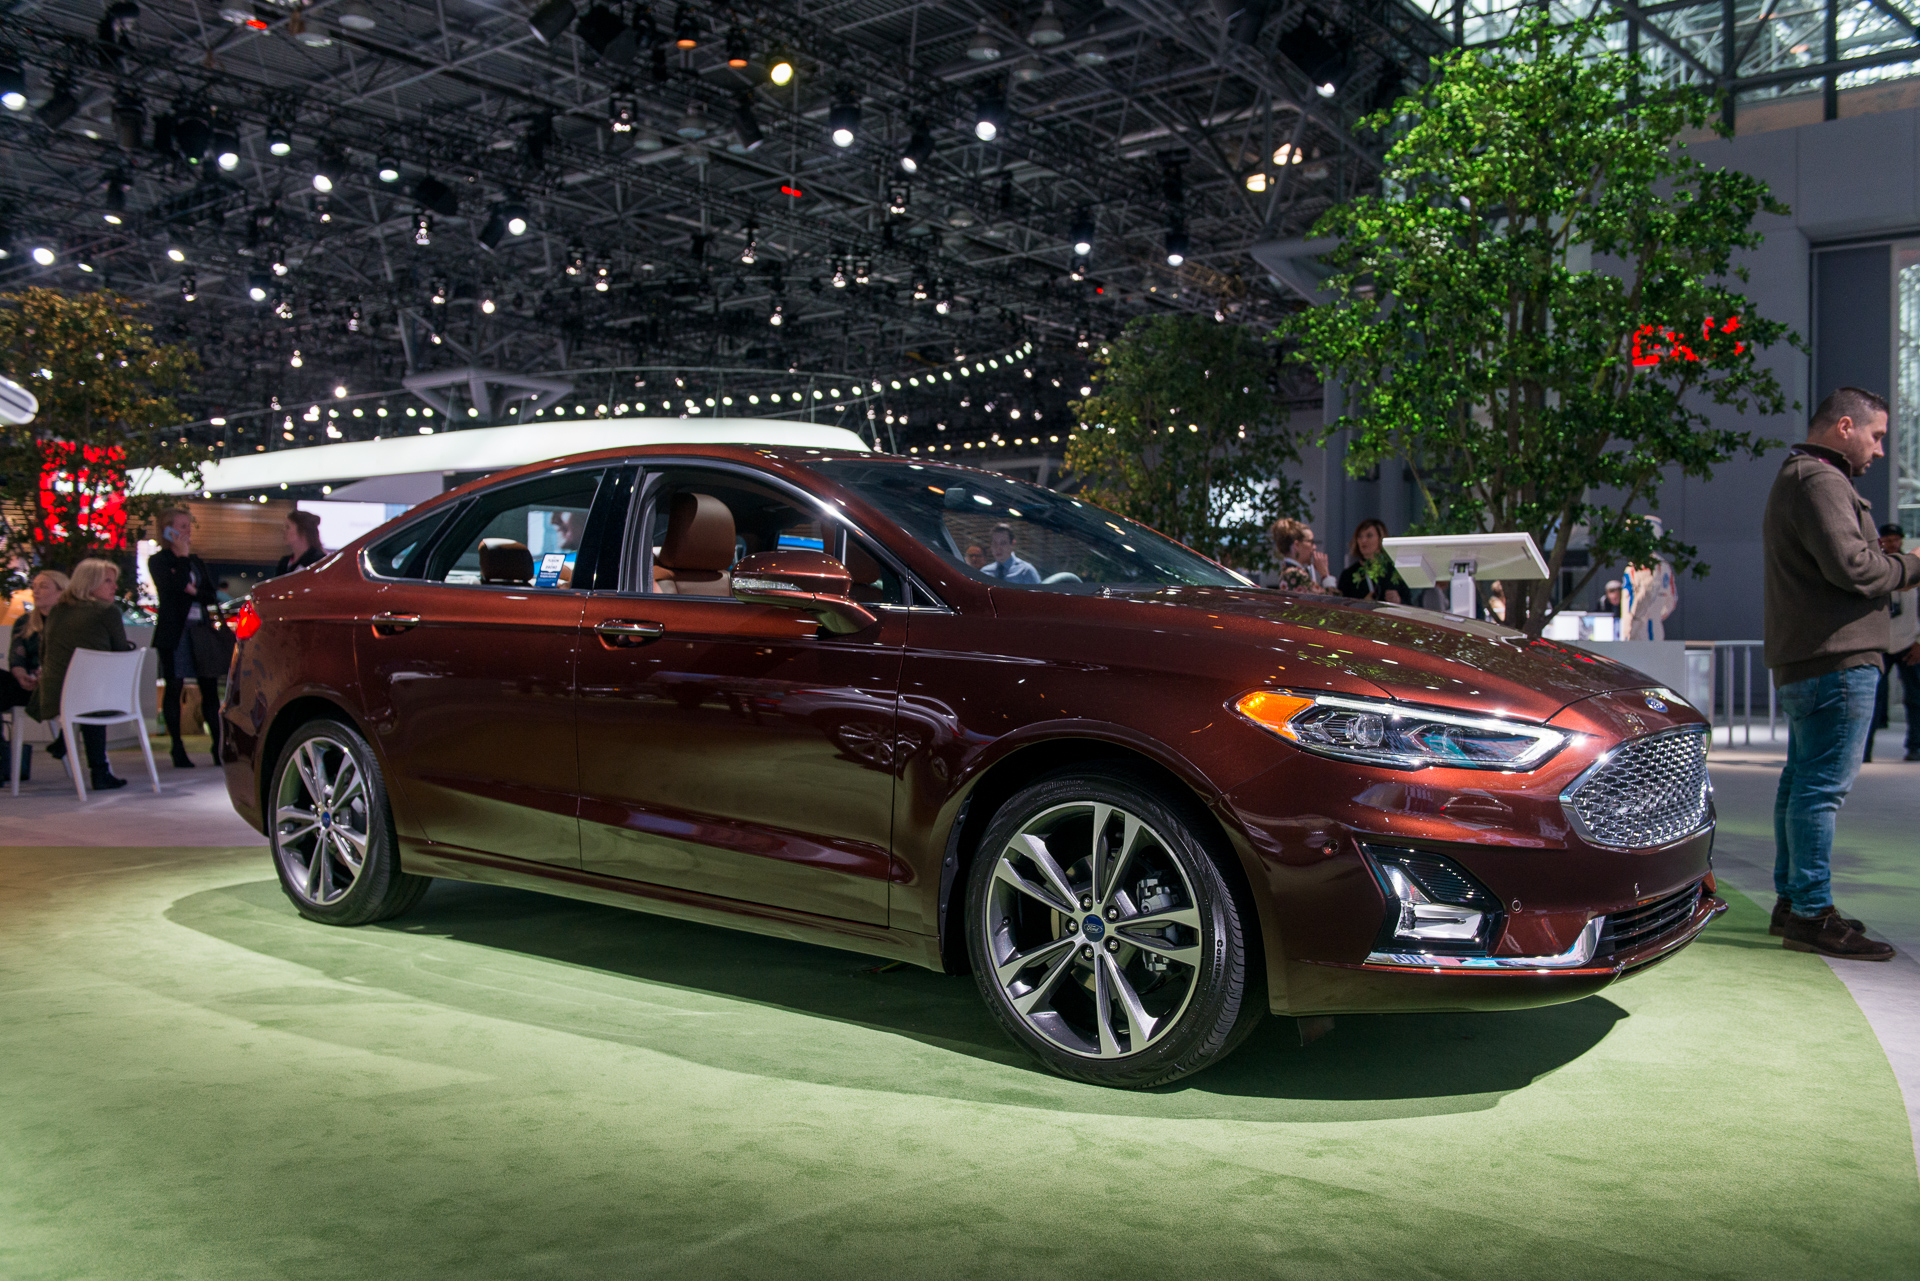 fluff, buff, and safety stuff: 2019 ford fusion gets new face and